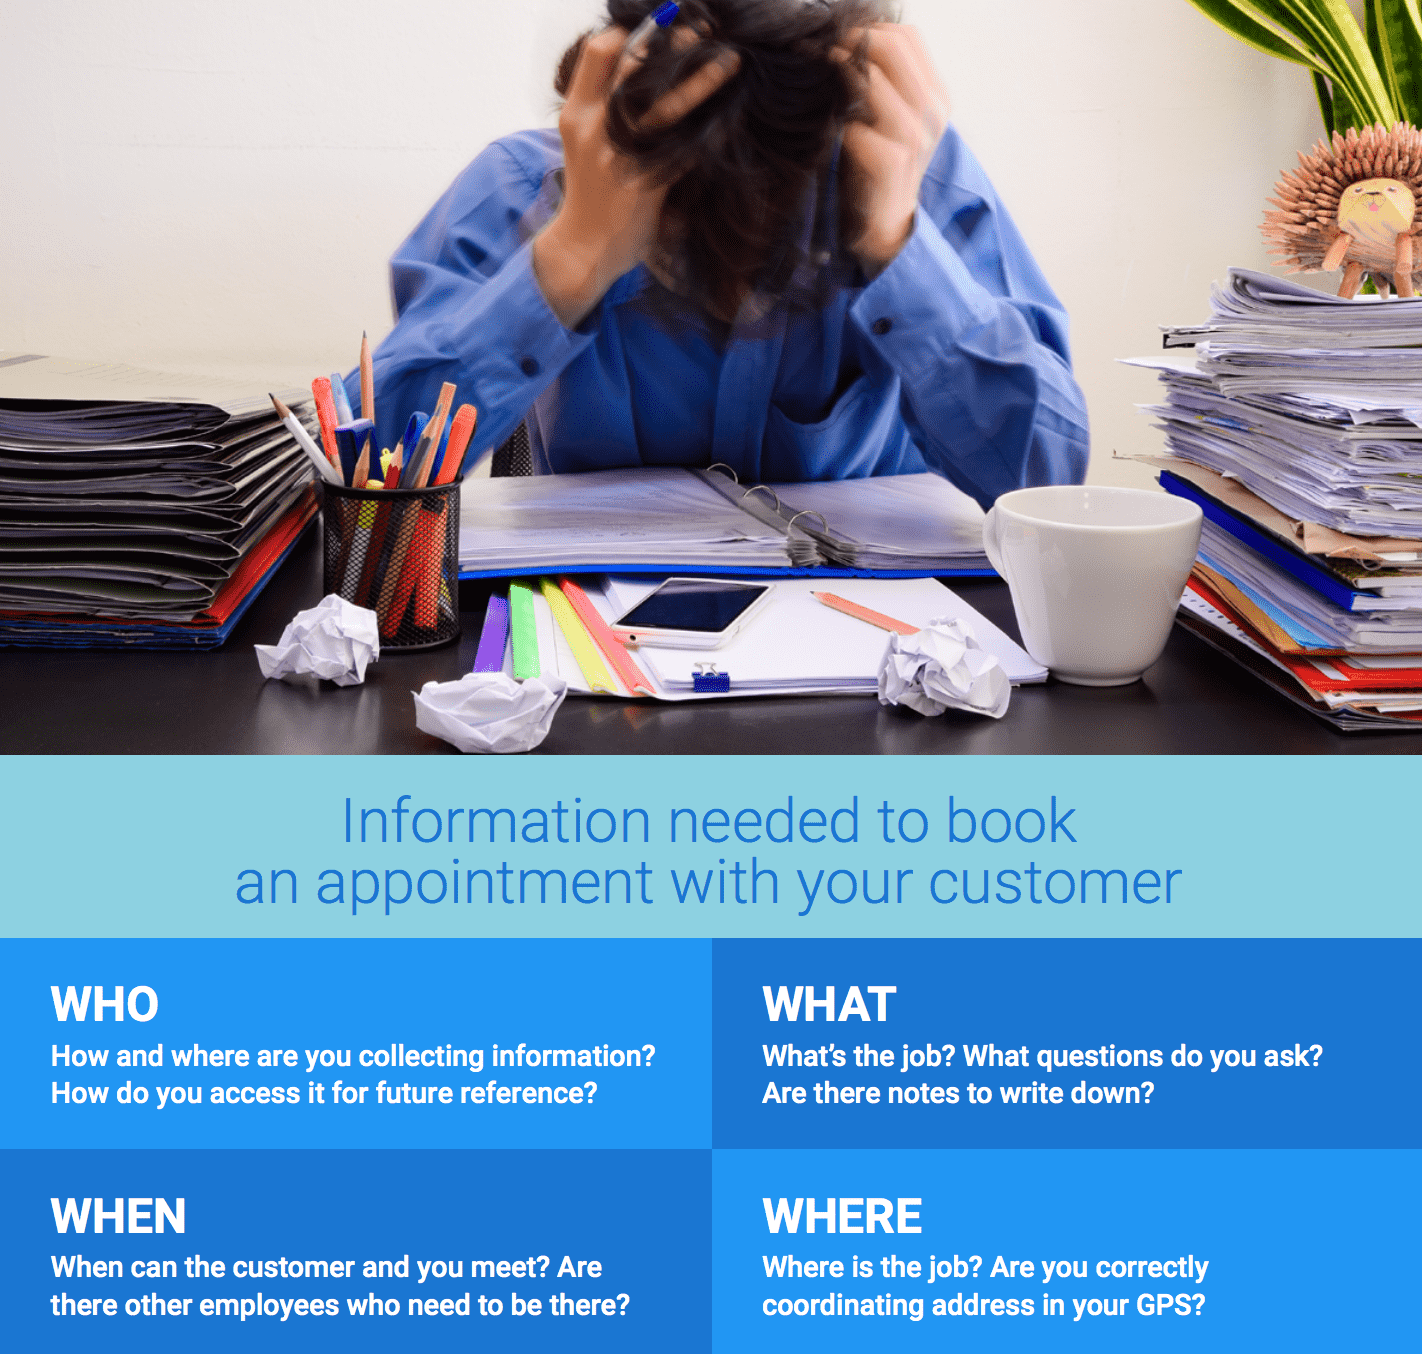 Information needed to book an appointment with your customer